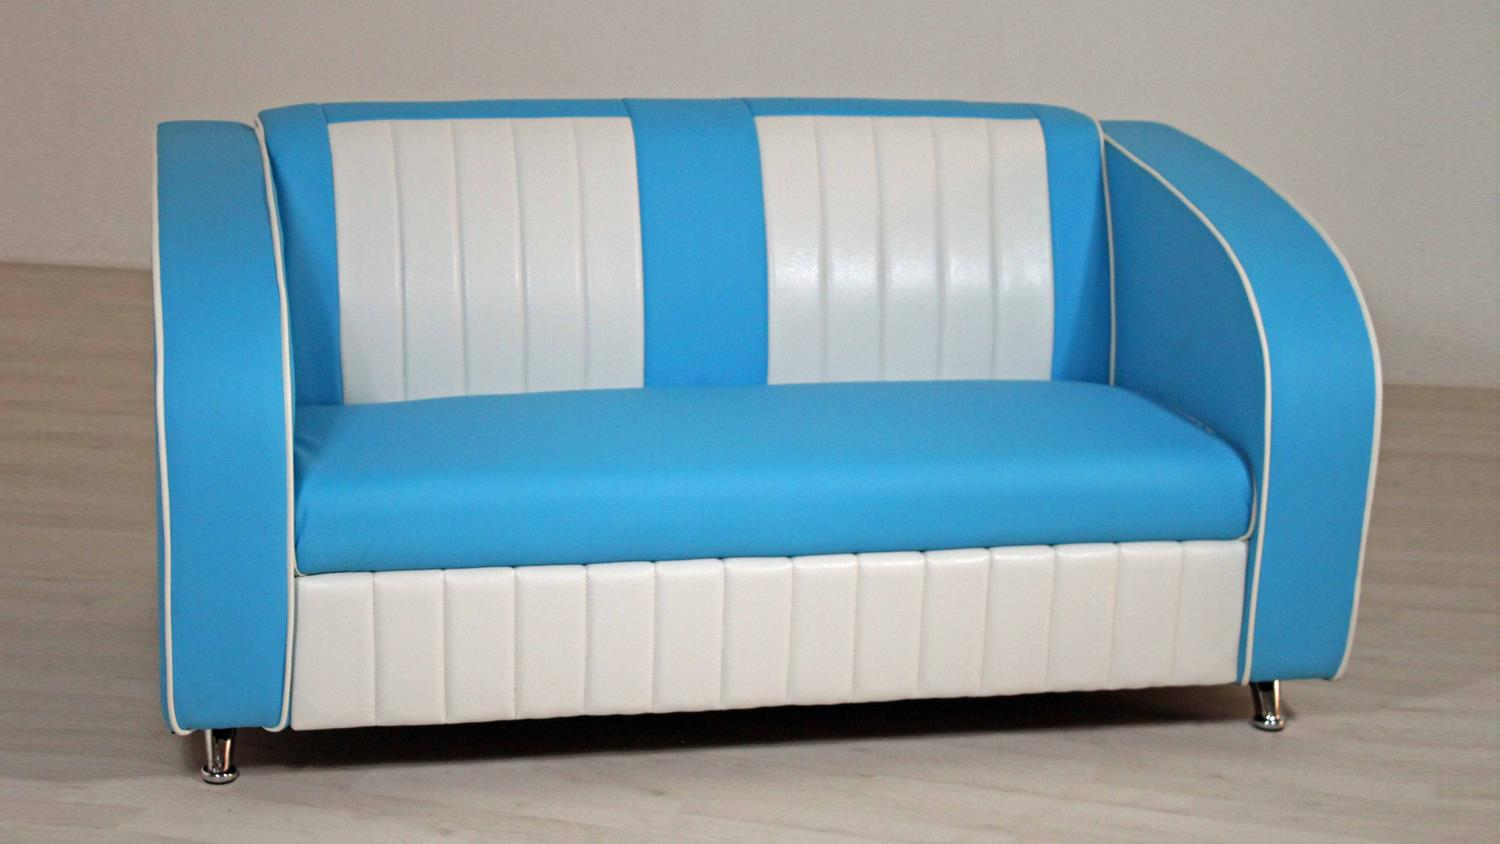 50er jahre sofa elegant sofa schilfgrn with 50er jahre sofa elegant blue velvet office swivel. Black Bedroom Furniture Sets. Home Design Ideas